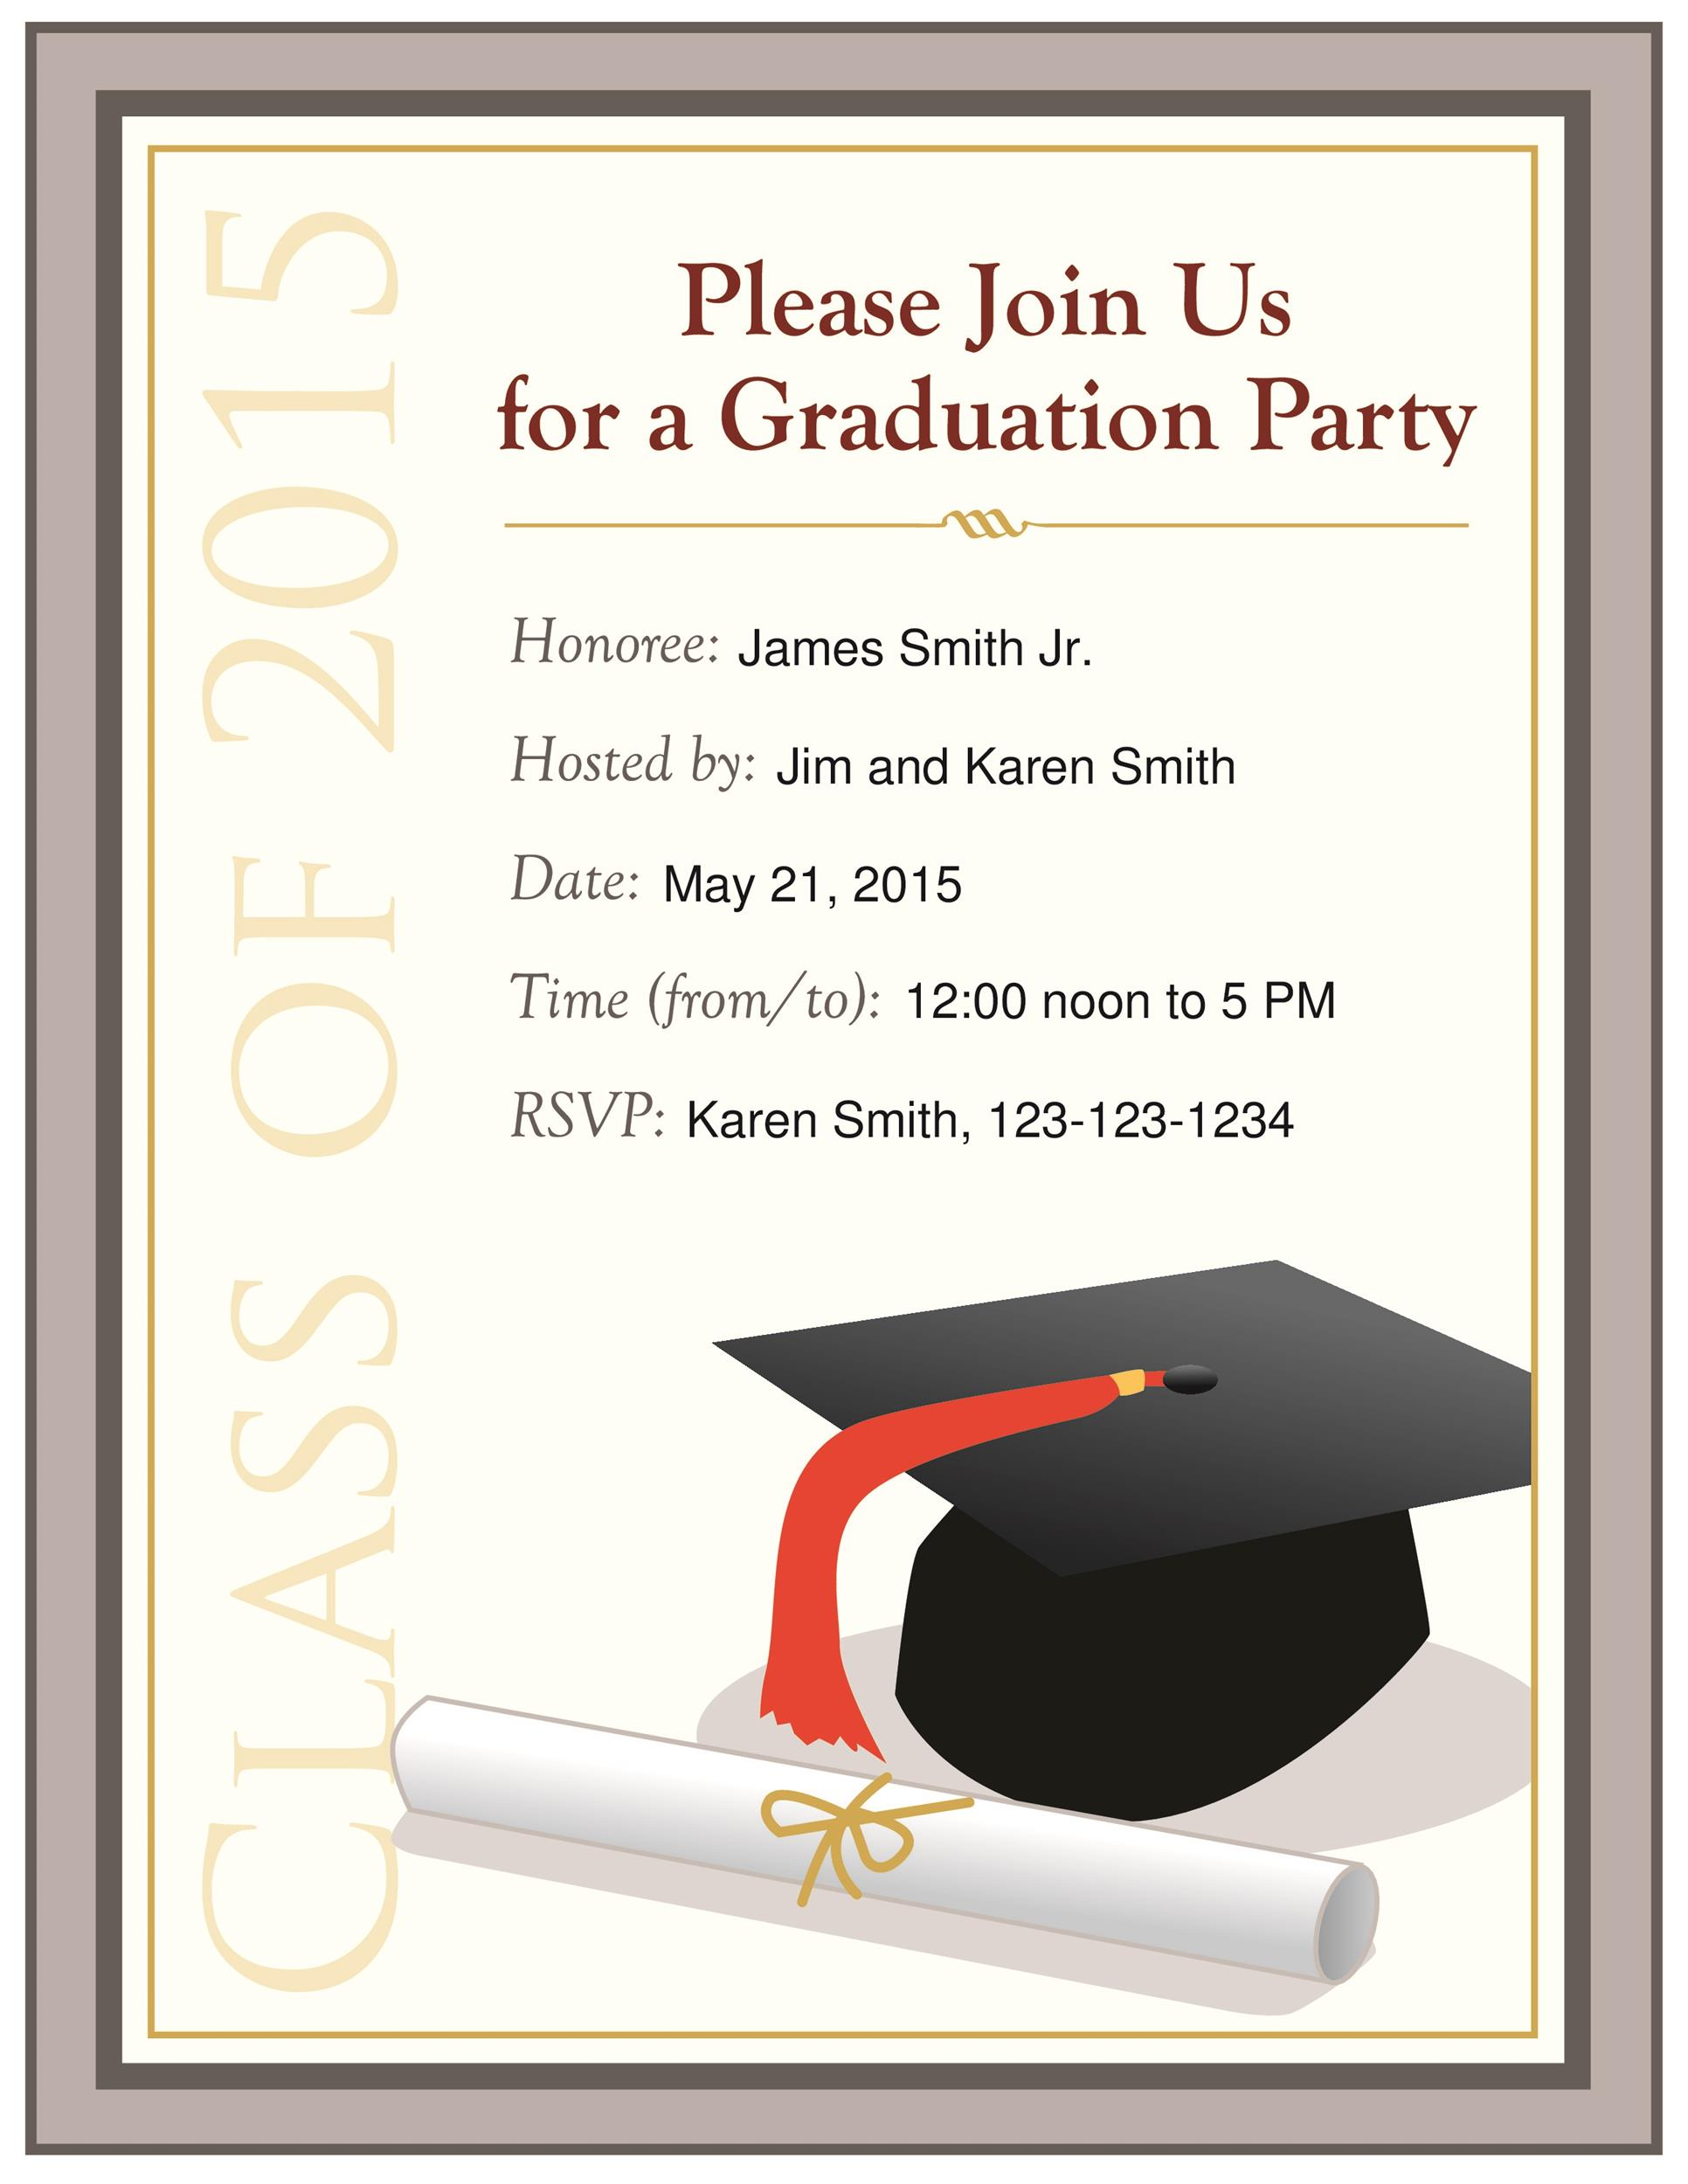 Grad Party Invites Templates is amazing invitations sample